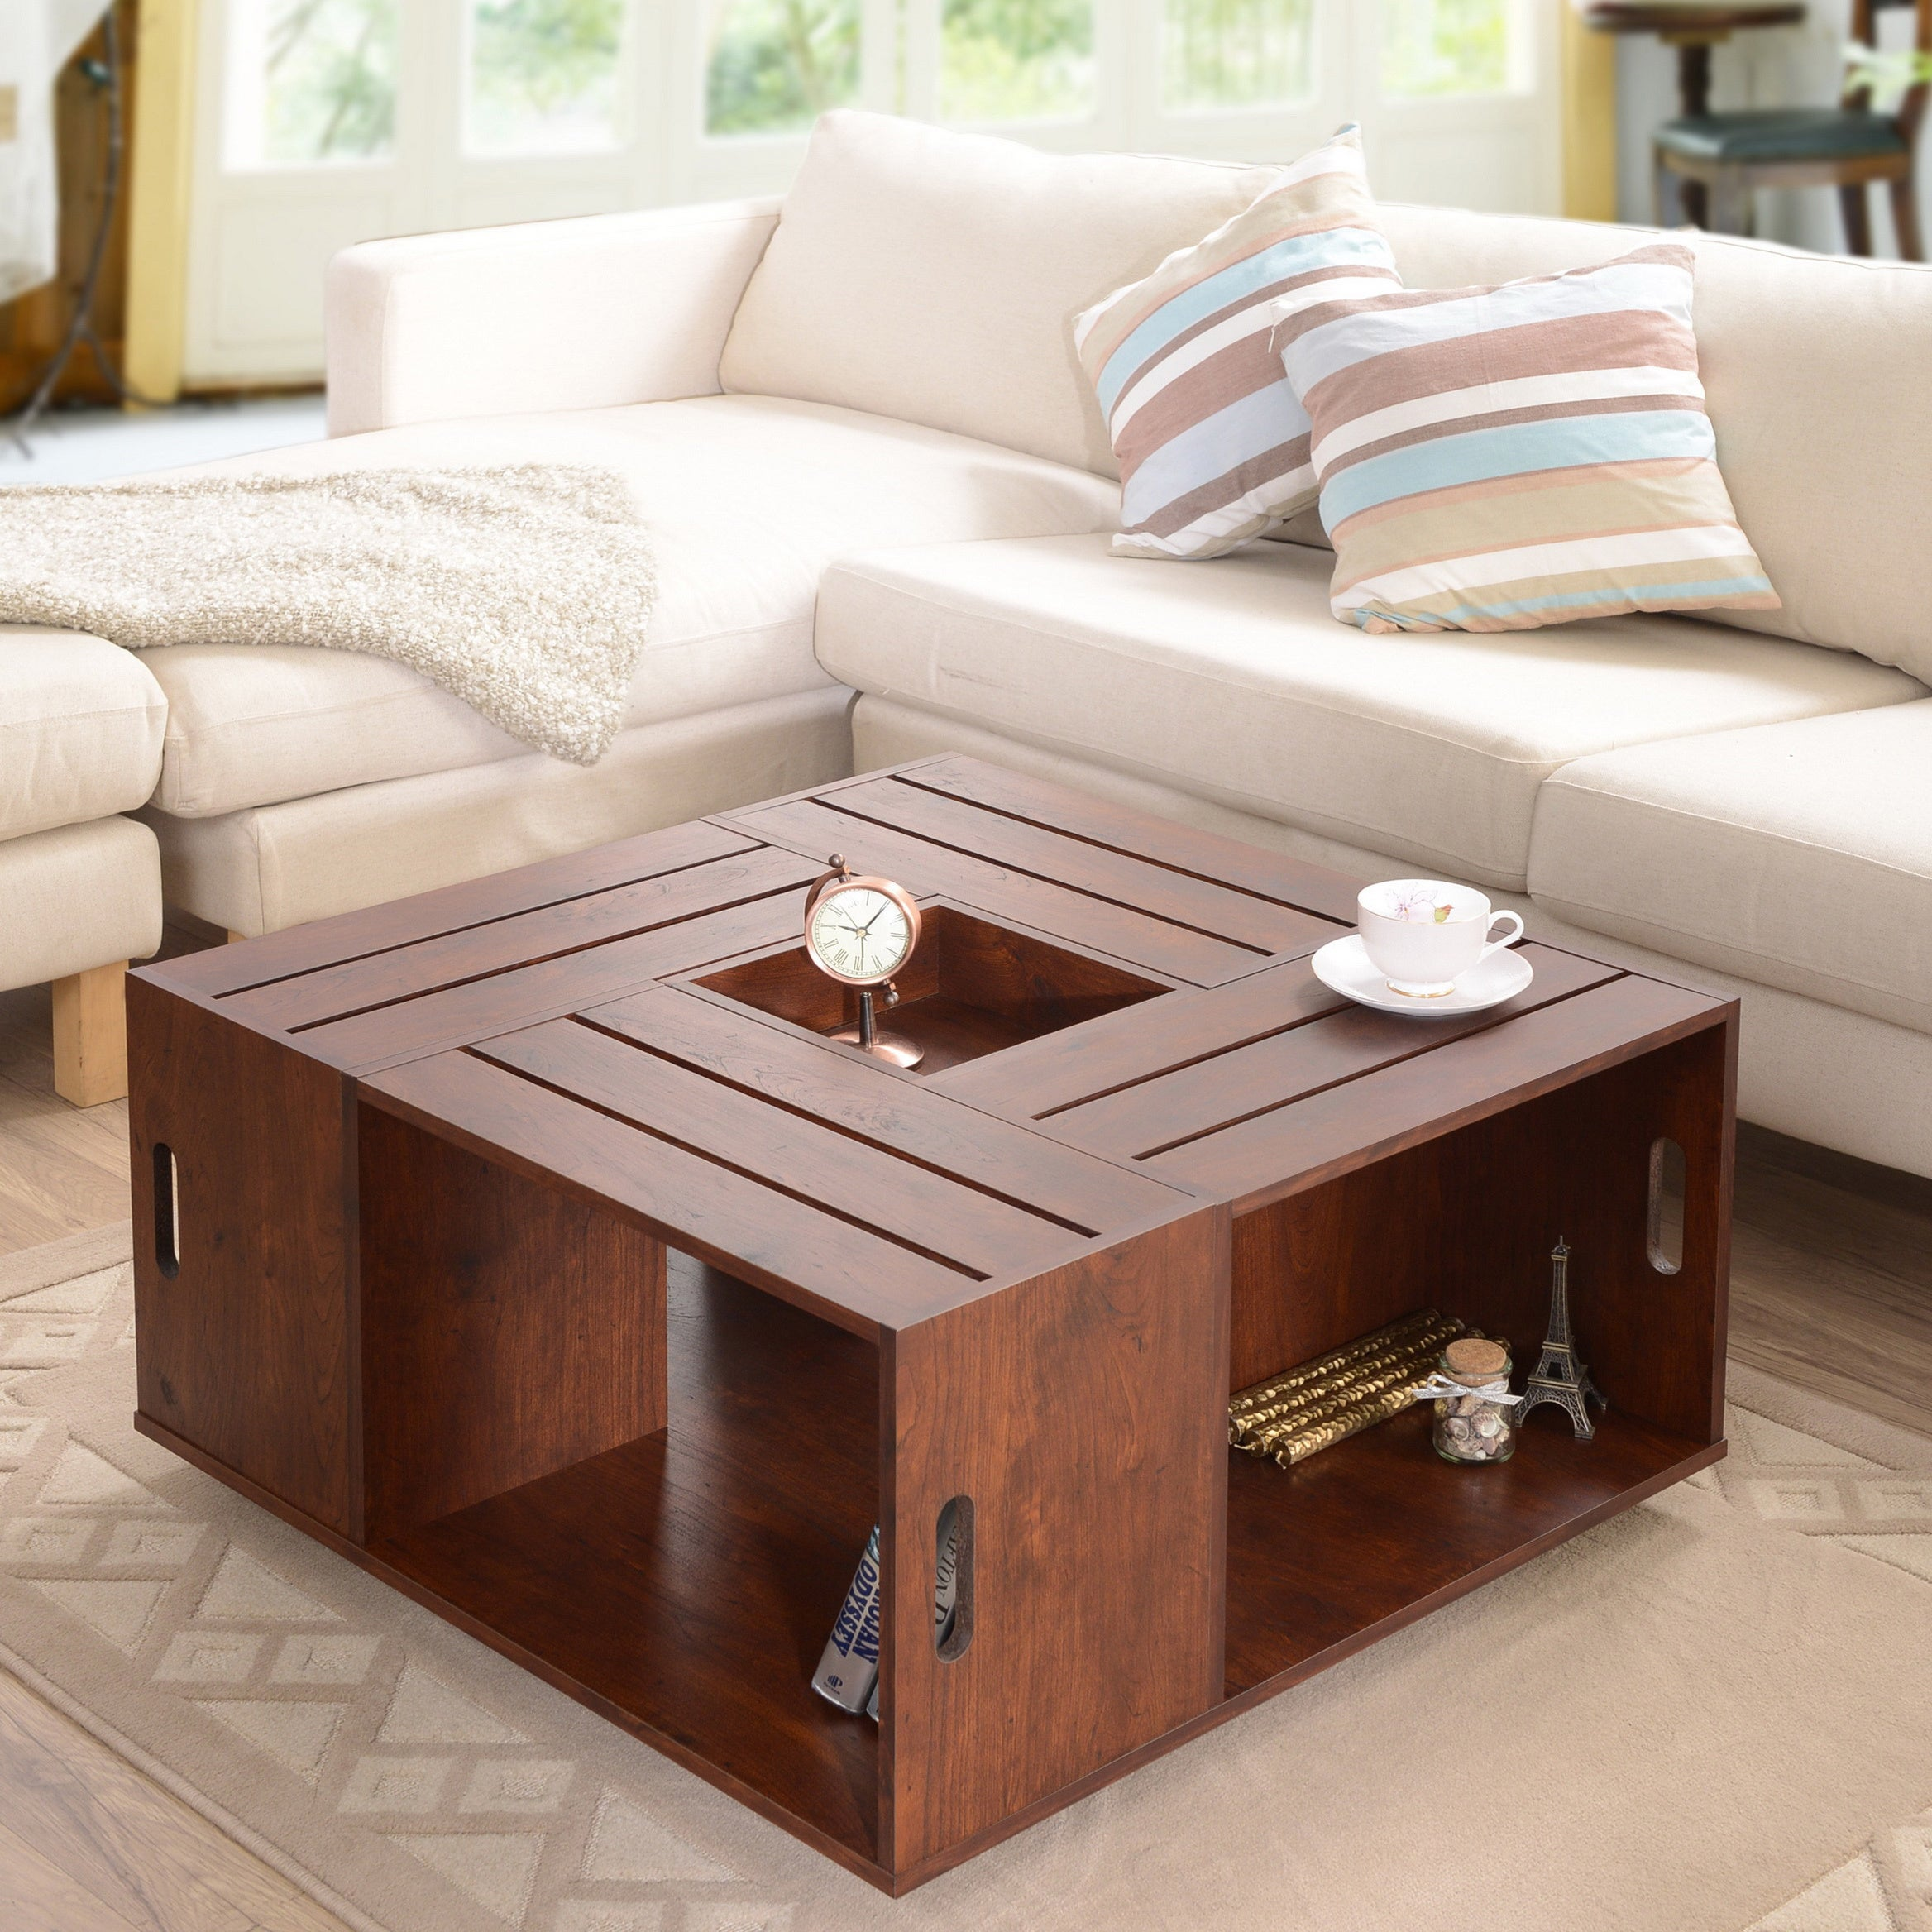 Furniture Of America The Crate Square Coffee Table With